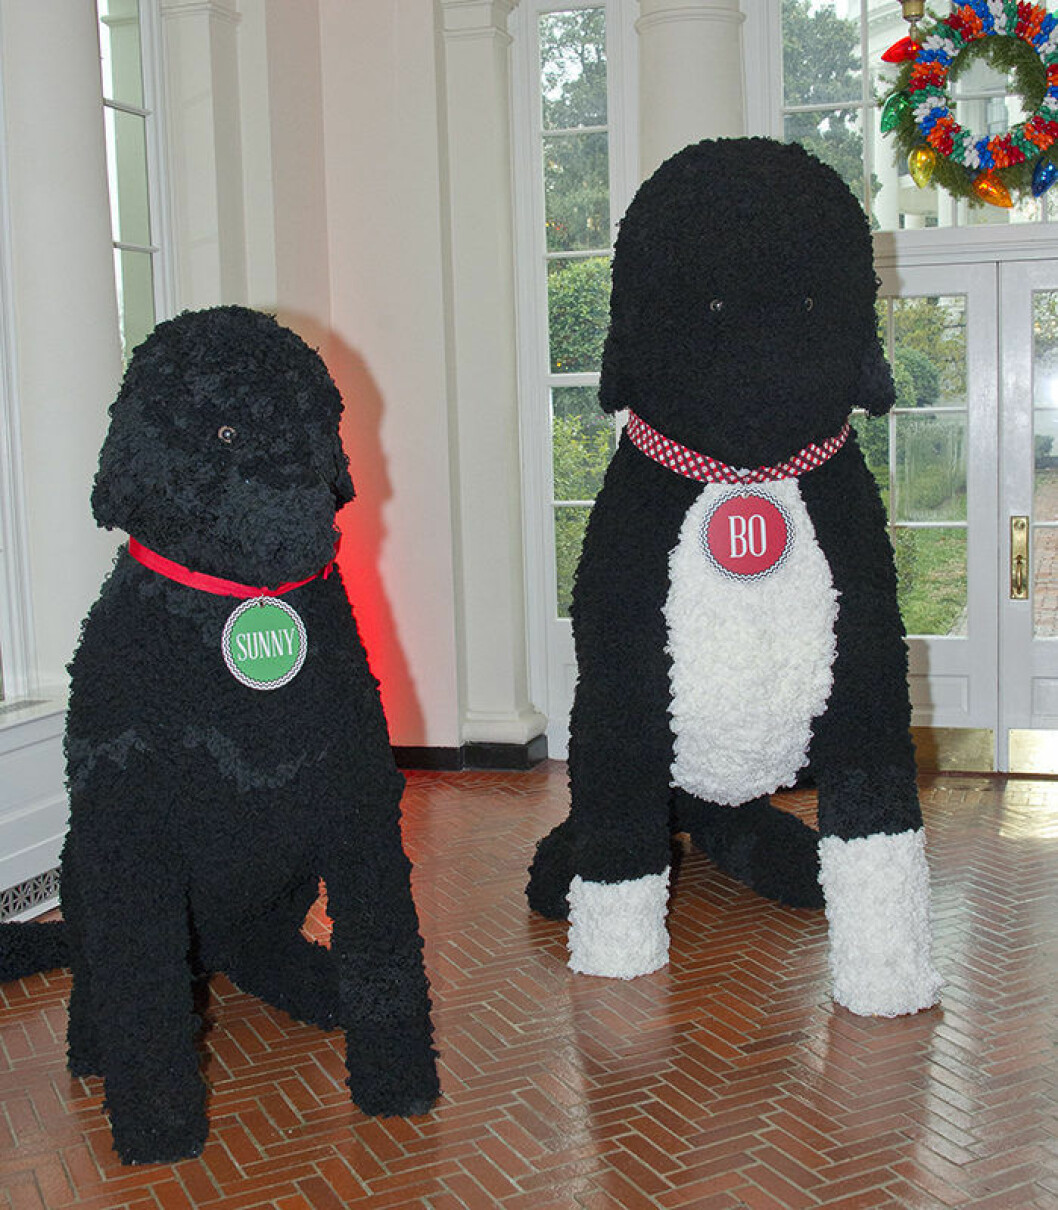 "The 2016 White House Christmas decorations are previewed for the press at the White House in Washington, DC on Tuesday, November 29, 2016. Pictured are larger than life replicas of the Obama dogs Sunny and Bo, made of 25,000 yarn pom-poms. The first lady's office released the following statement to describe those decorations, ""This year?s holiday theme, 'The Gift of the Holidays,' reflects on not only the joy of giving and receiving, but also the true gifts of life, such as service, friends and family, education, and good health, as we celebrate the holiday season."" Credit: Ron Sachs / CNP /insight media"